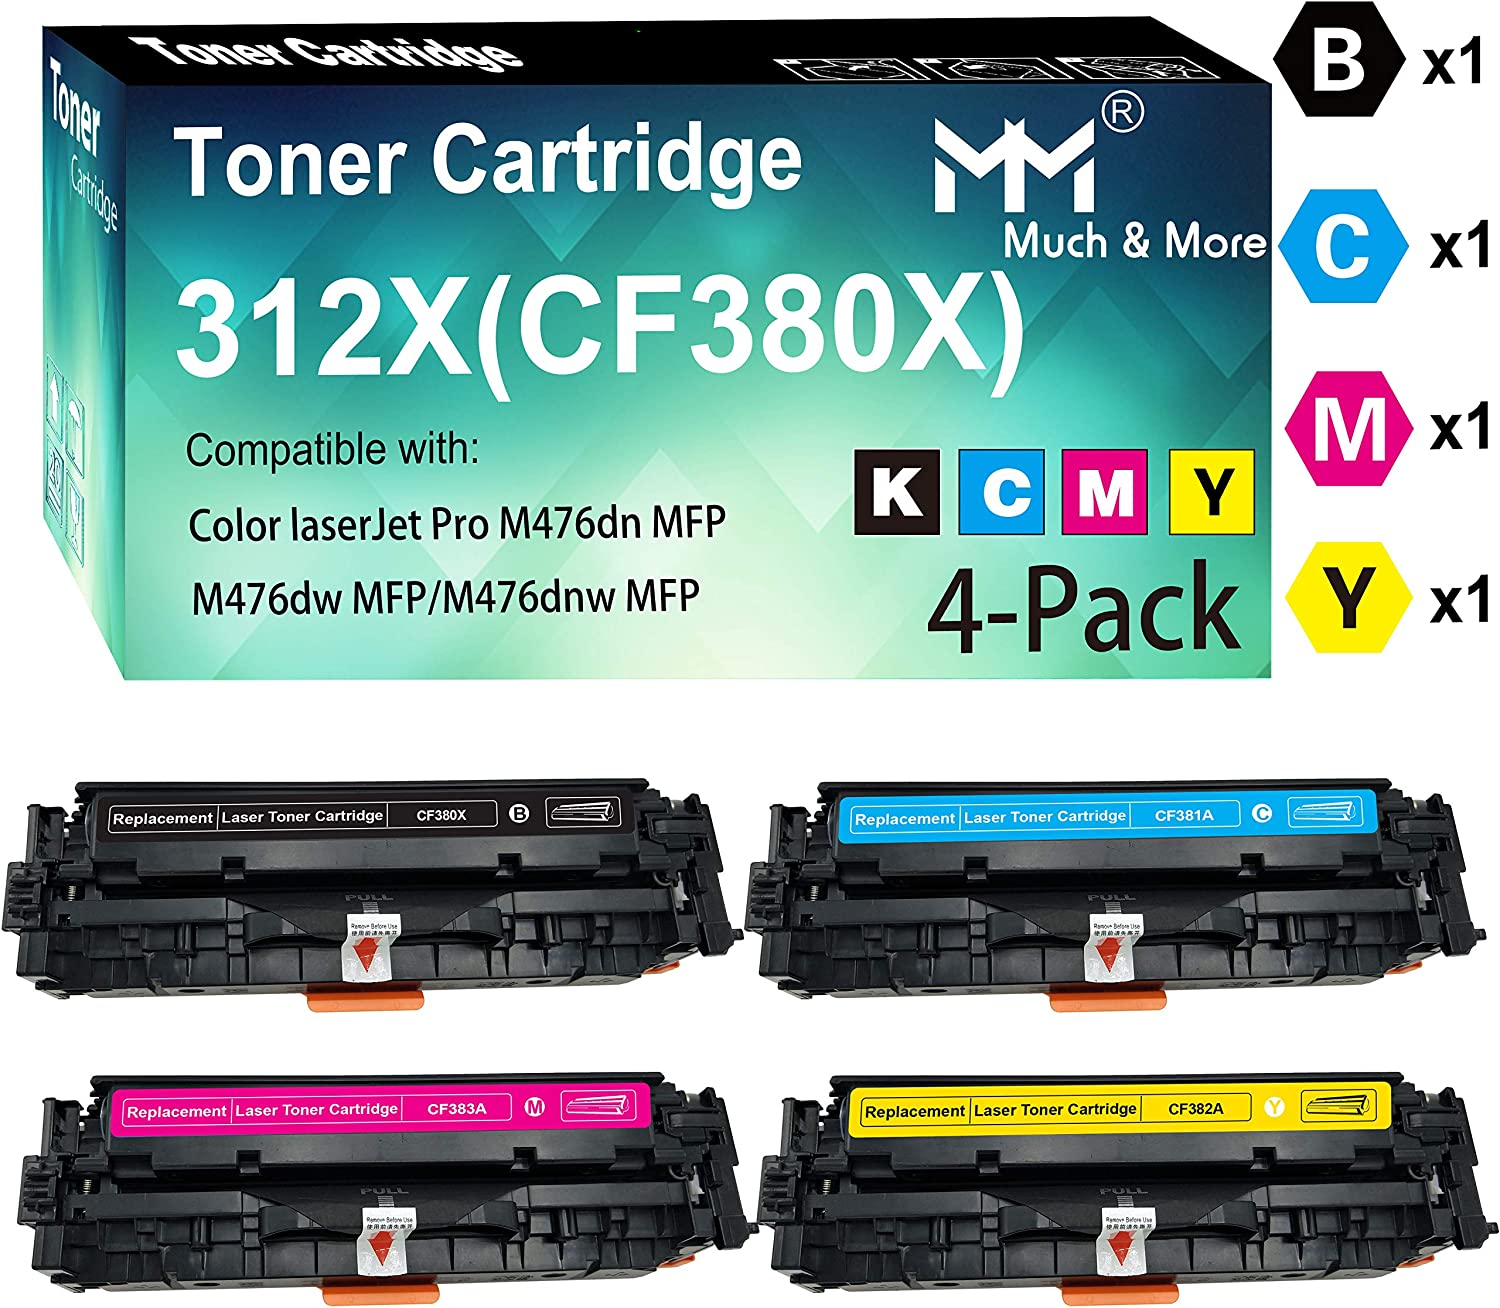 4-Pack (BK+C+M+Y) Compatible CF380X CF381A CF382A CF383A Toner Cartridge 312X Work with HP Color Laserjet Pro MFP M476dn M476dw M476dnw Printer, Sold by MuchMore